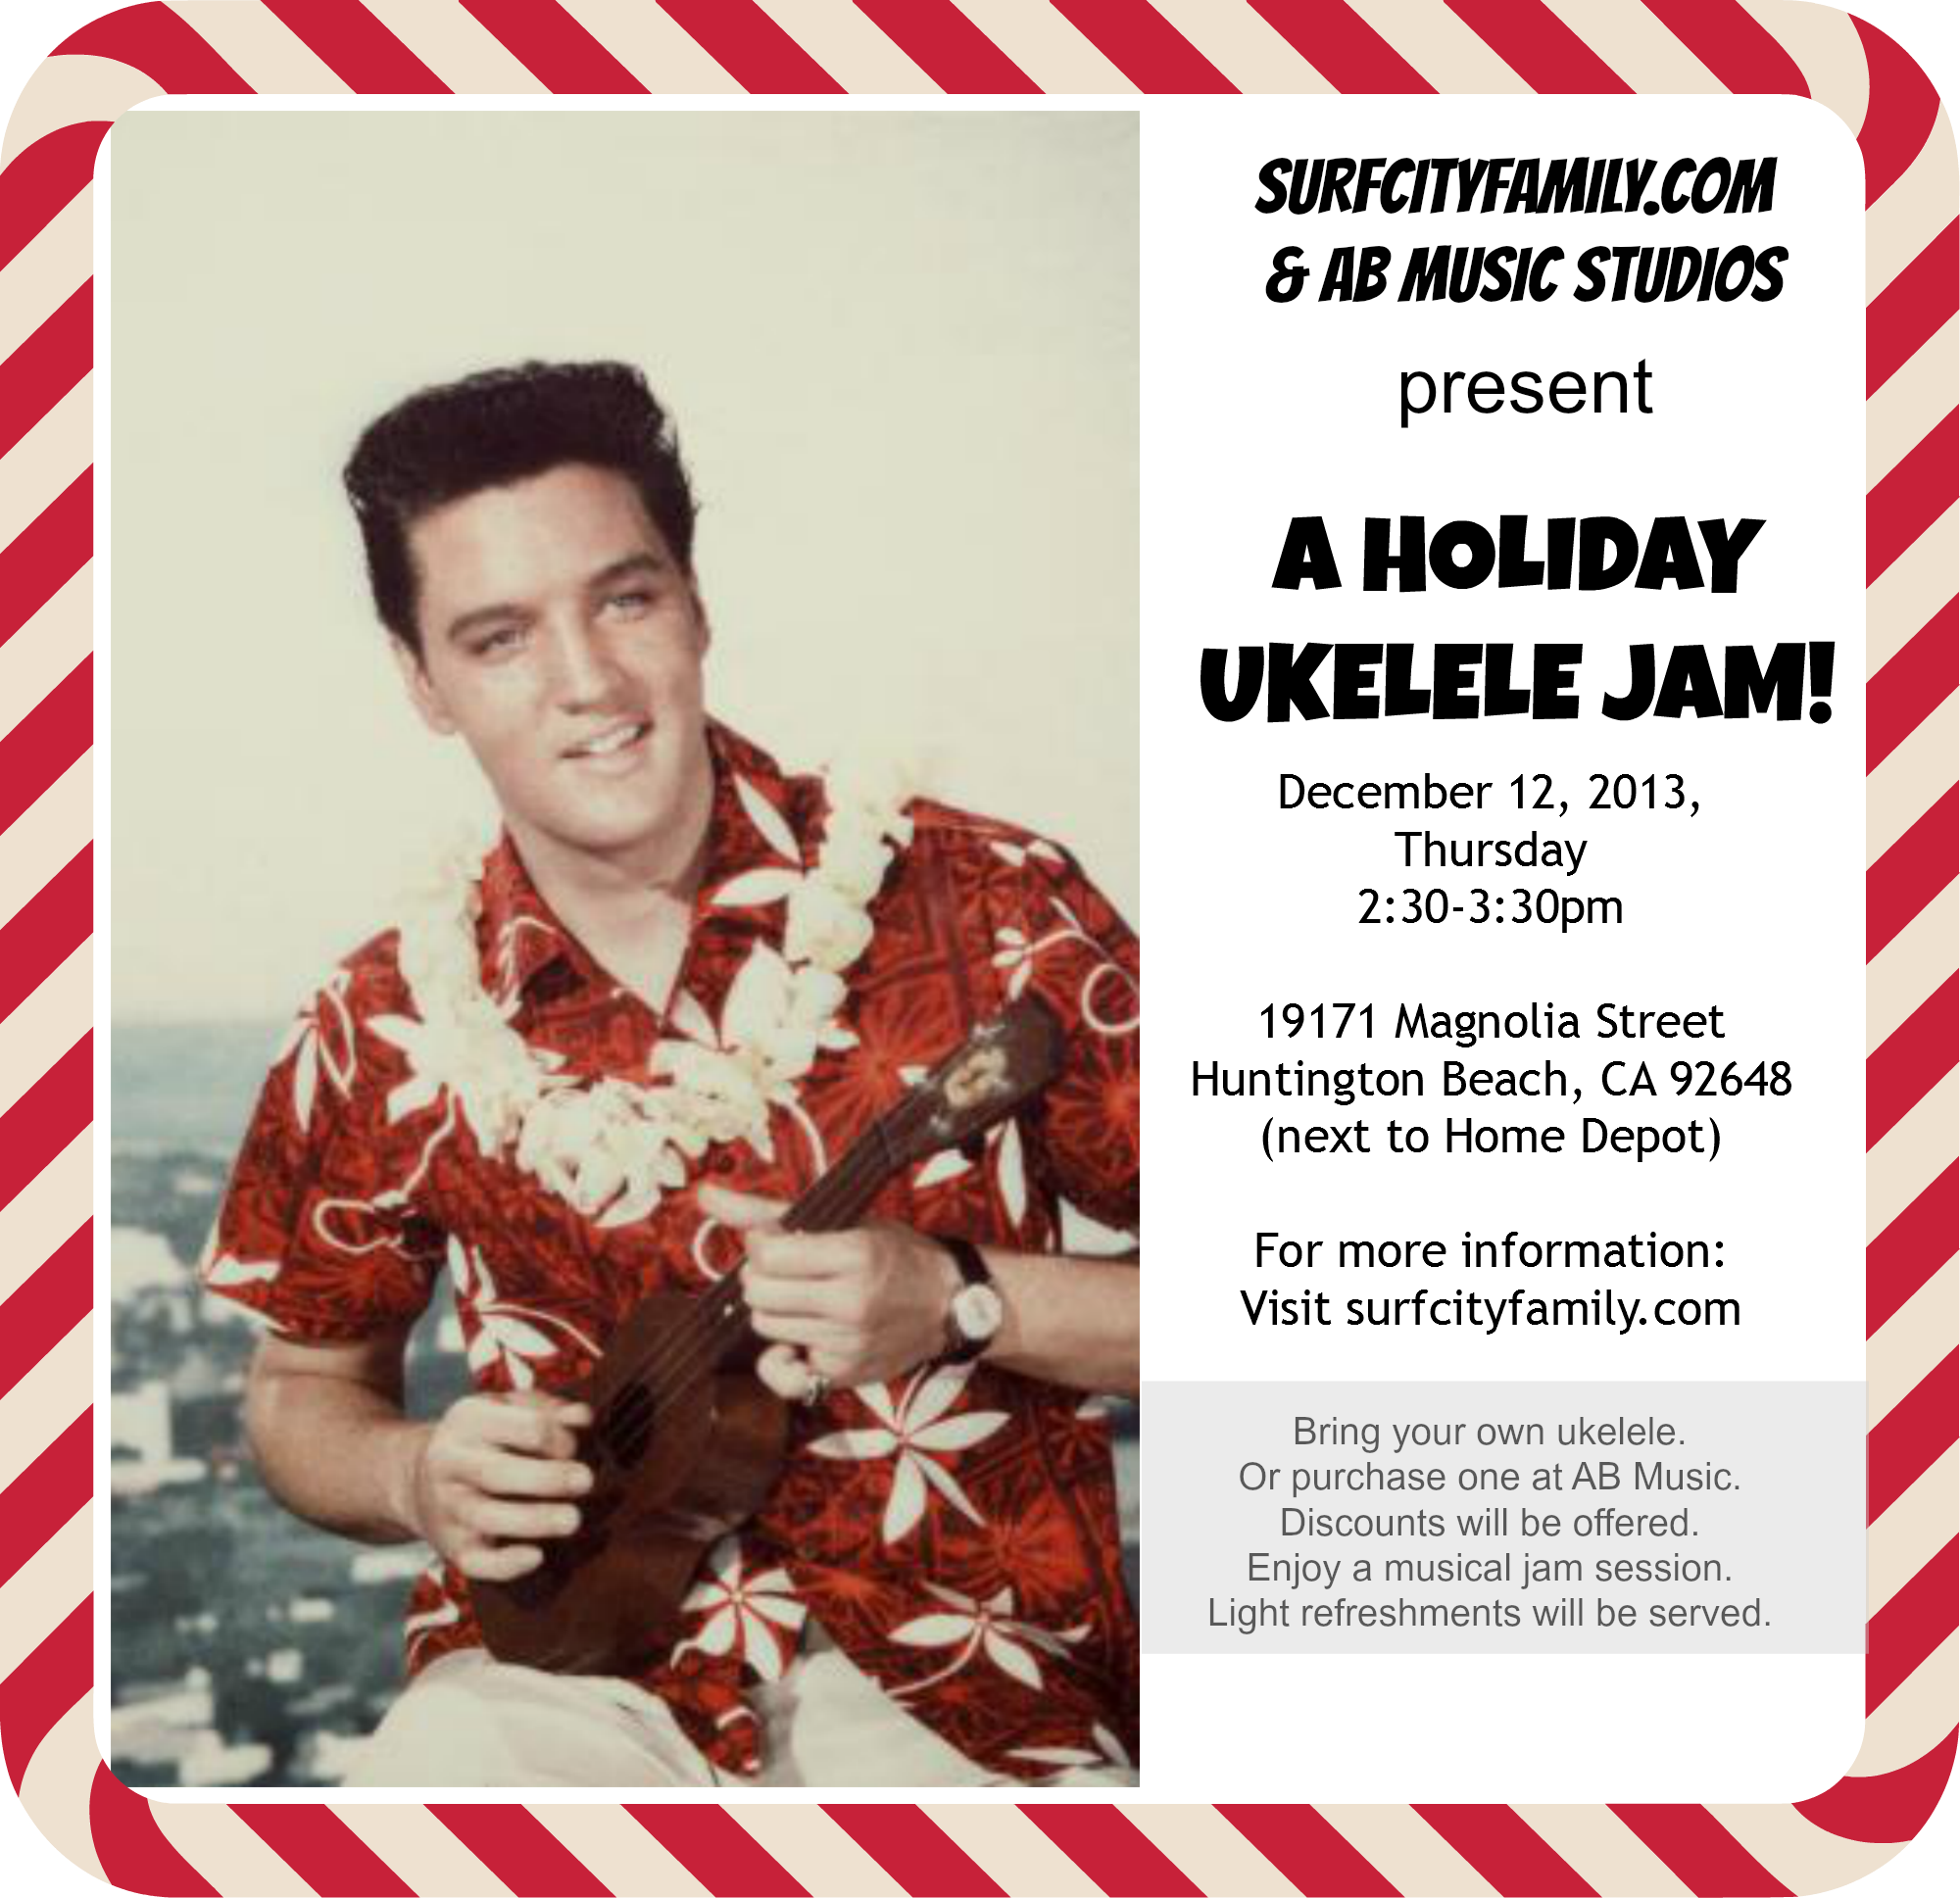 Holiday Ukulele Jam at AB Music Studios in Huntington Beach